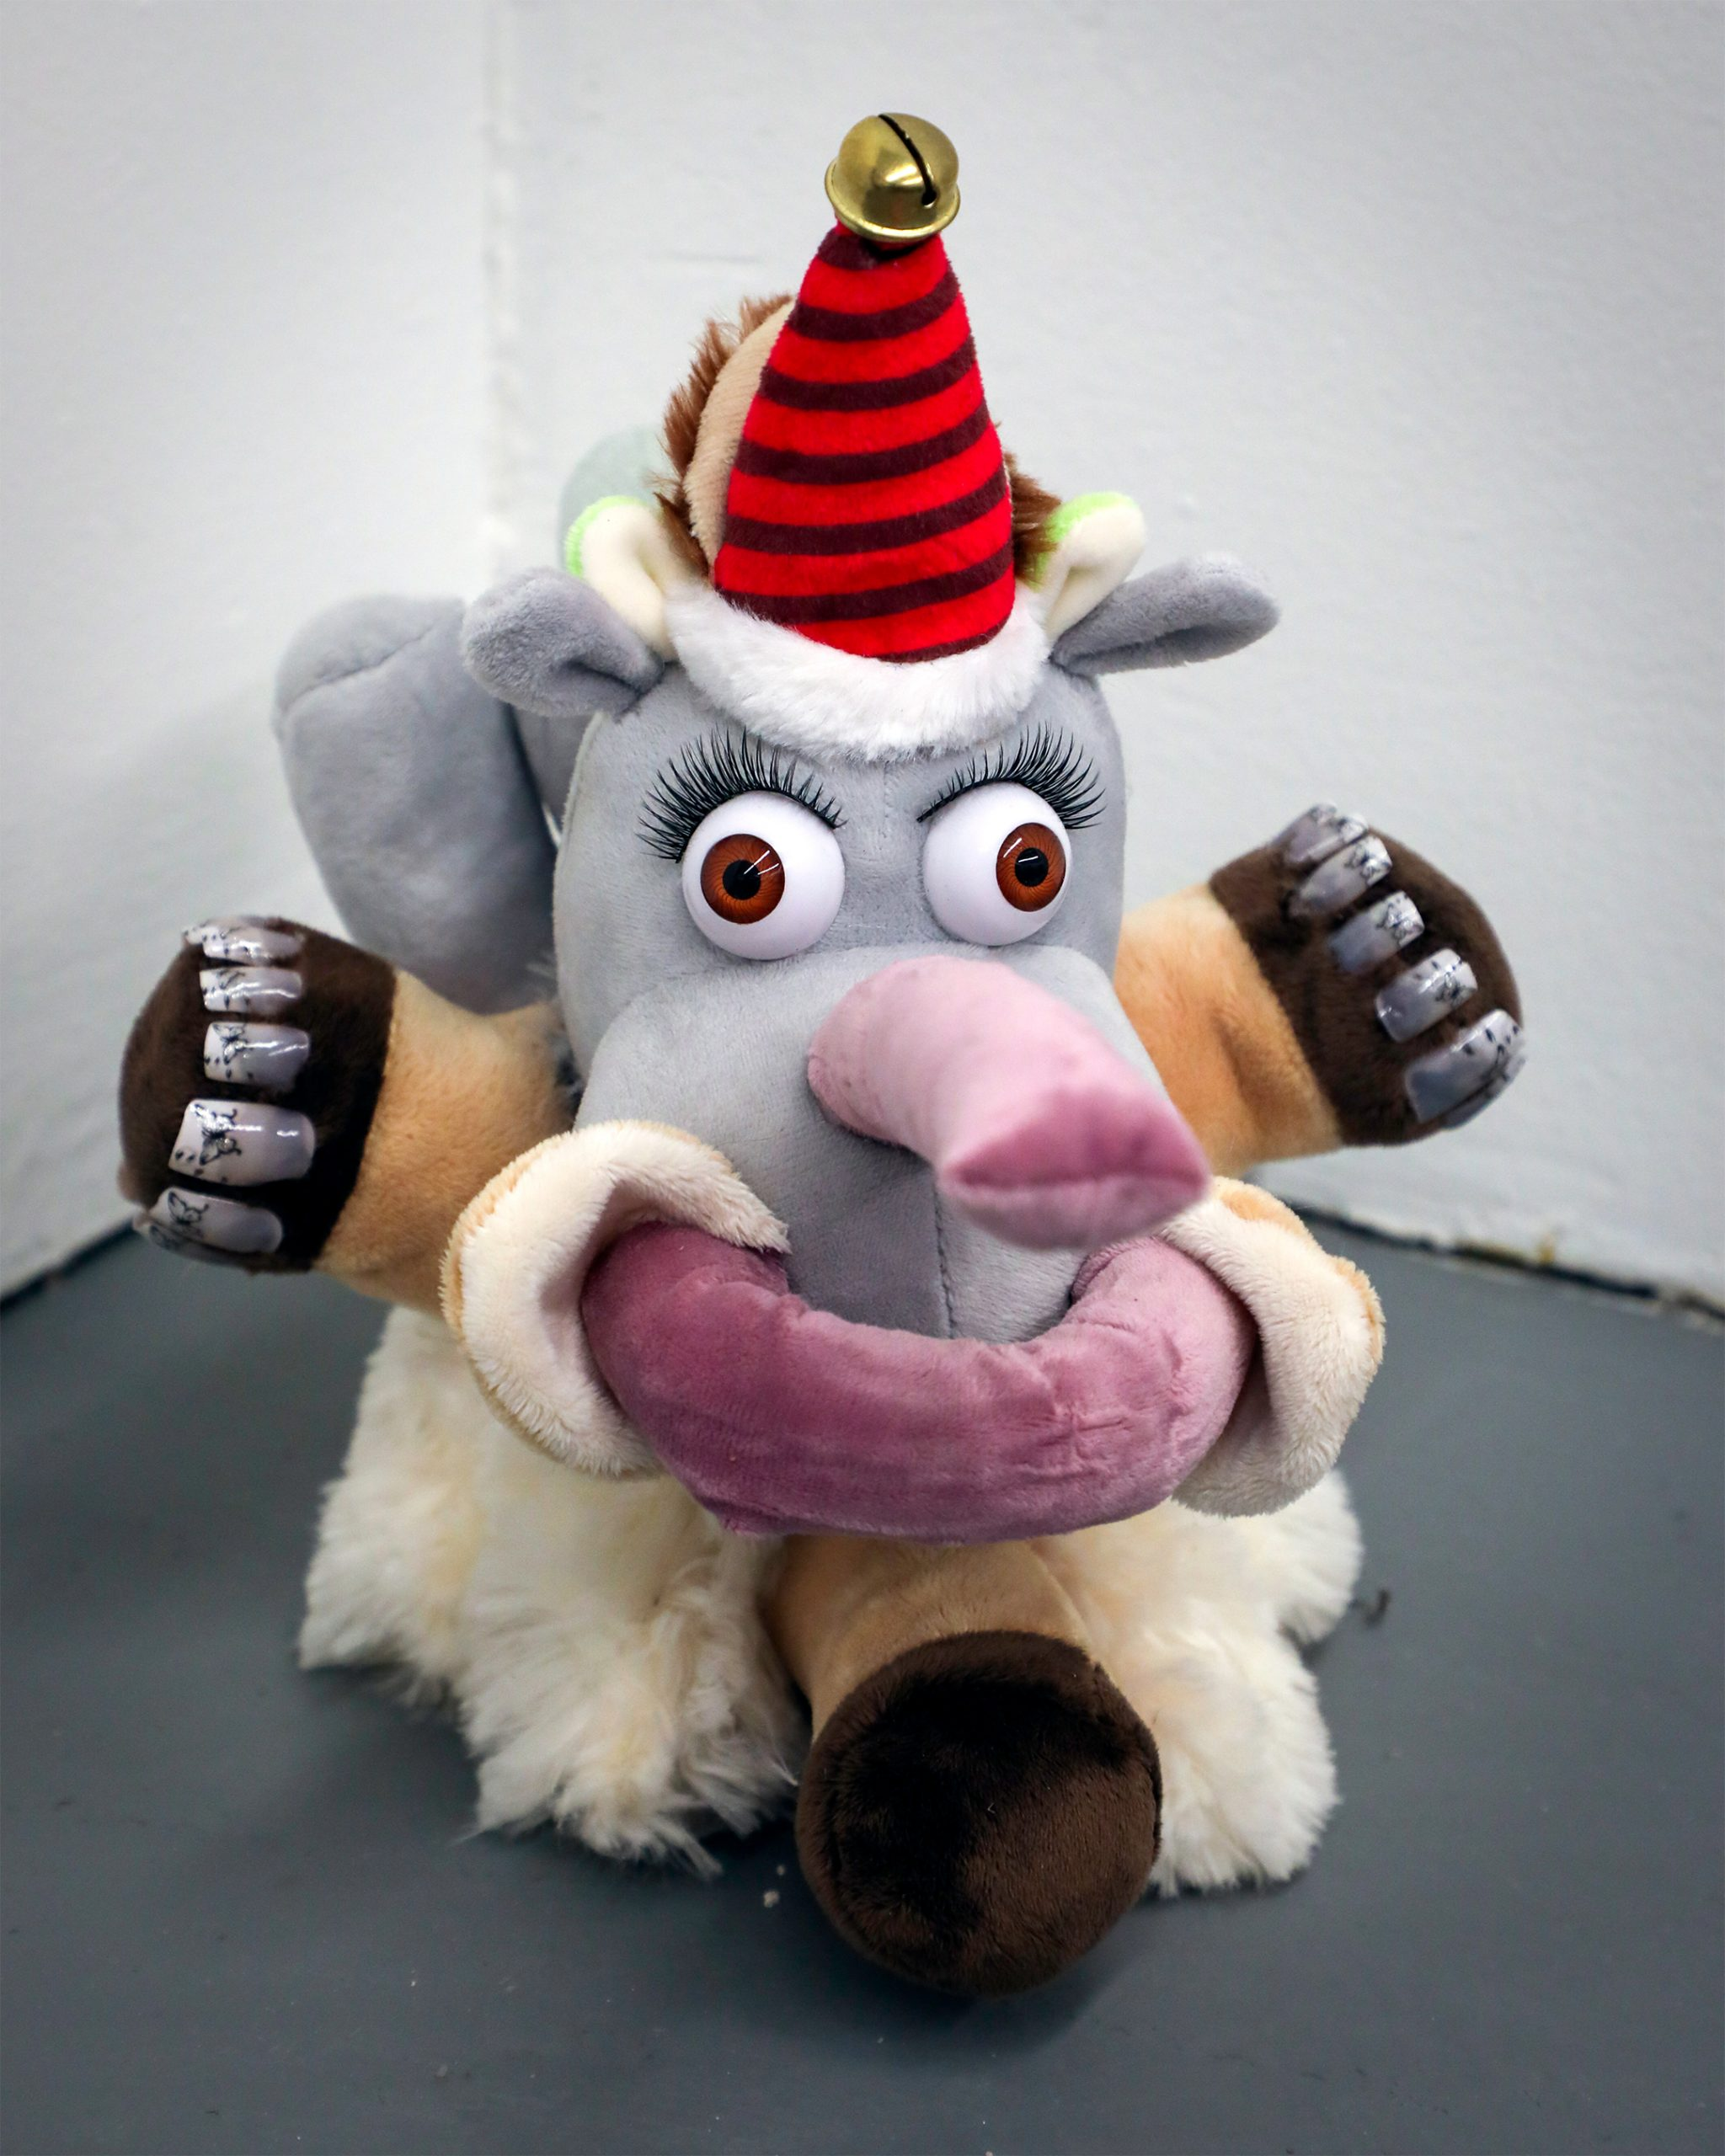 stuffed animal with a red hat and one leg